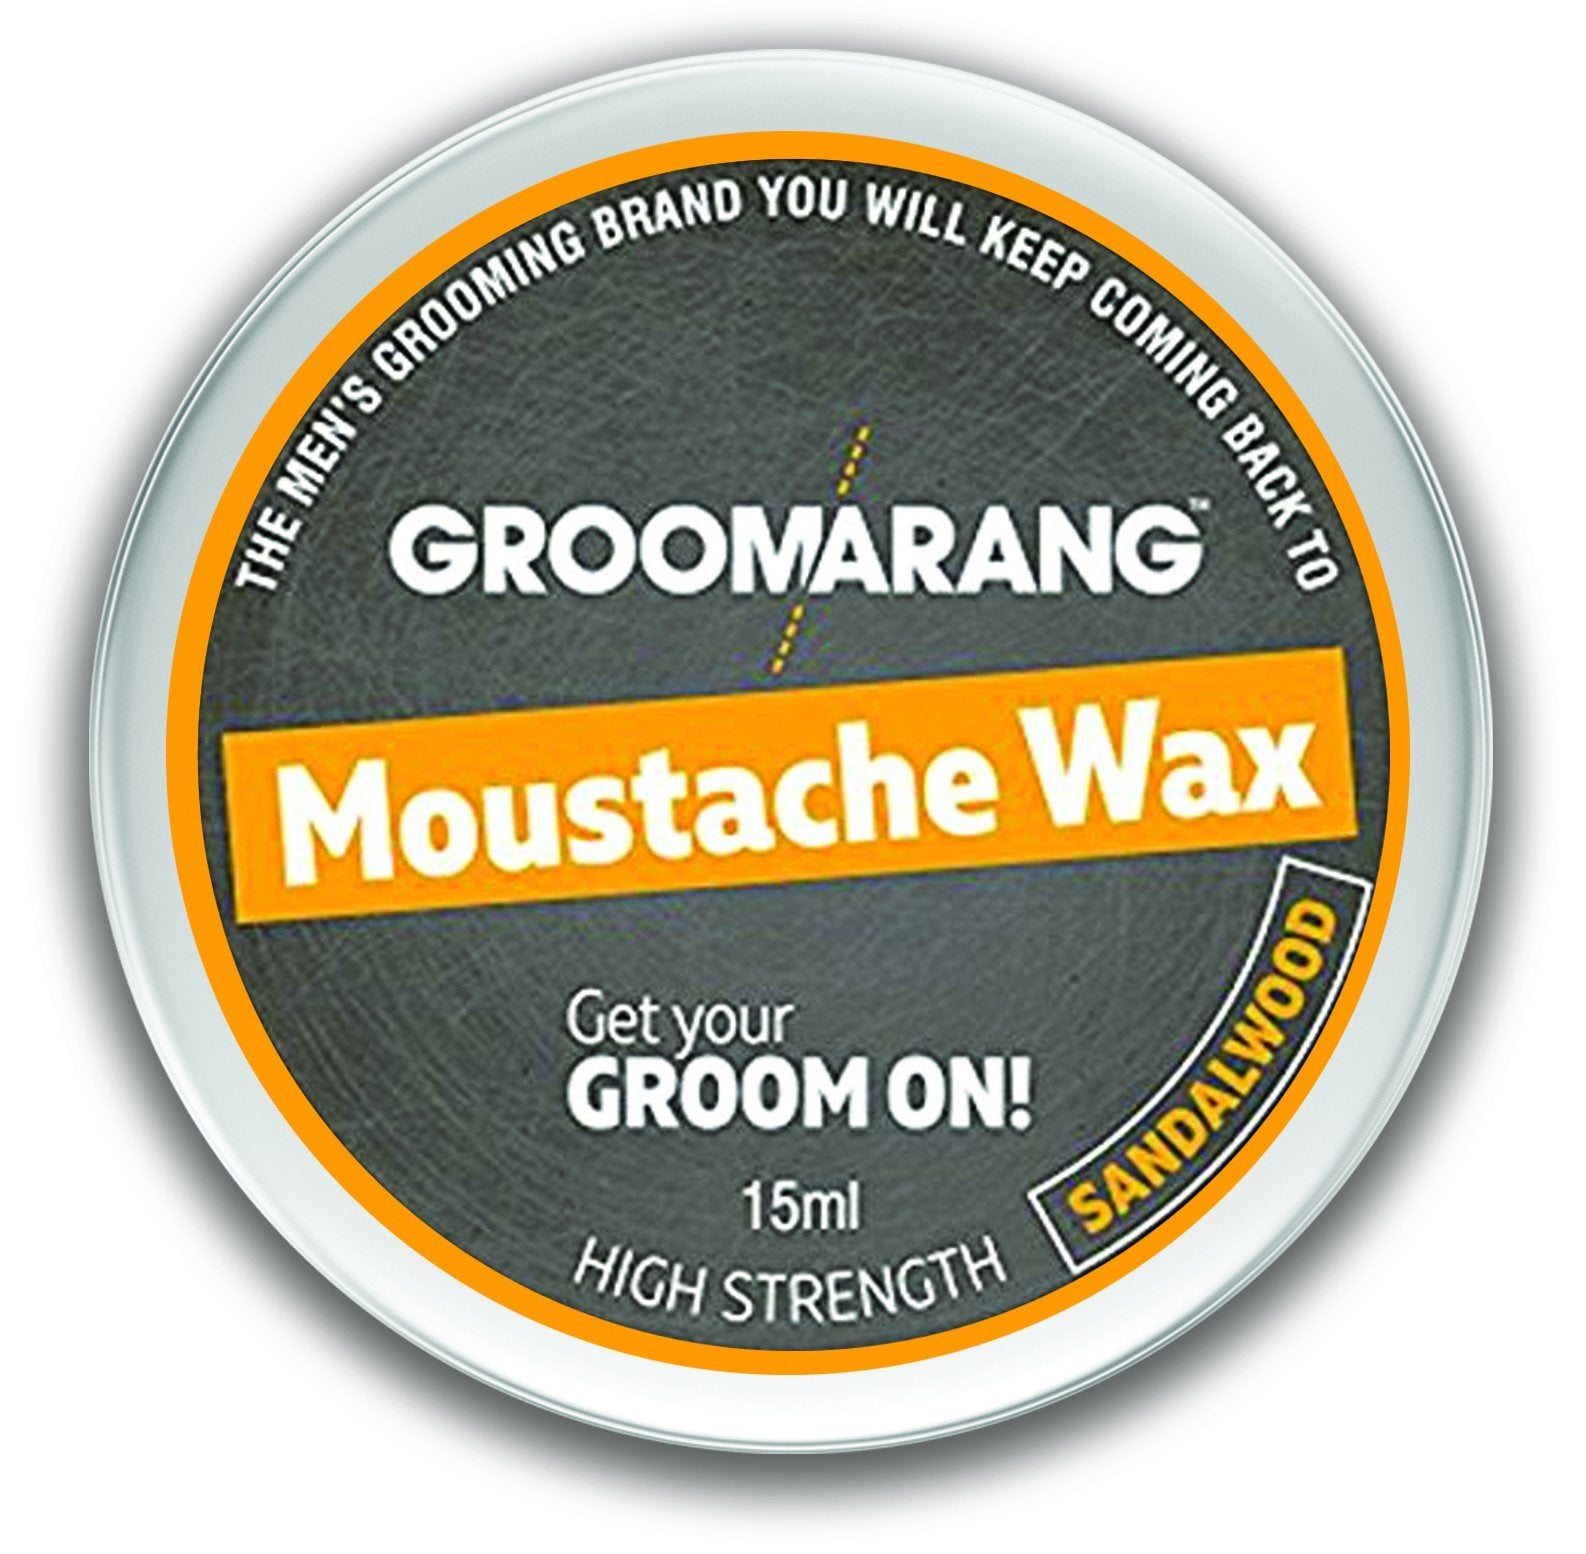 Groomarang Sandalwood Moustache Wax 15ml, Hair Styling Products by My Wholesale Warehouse